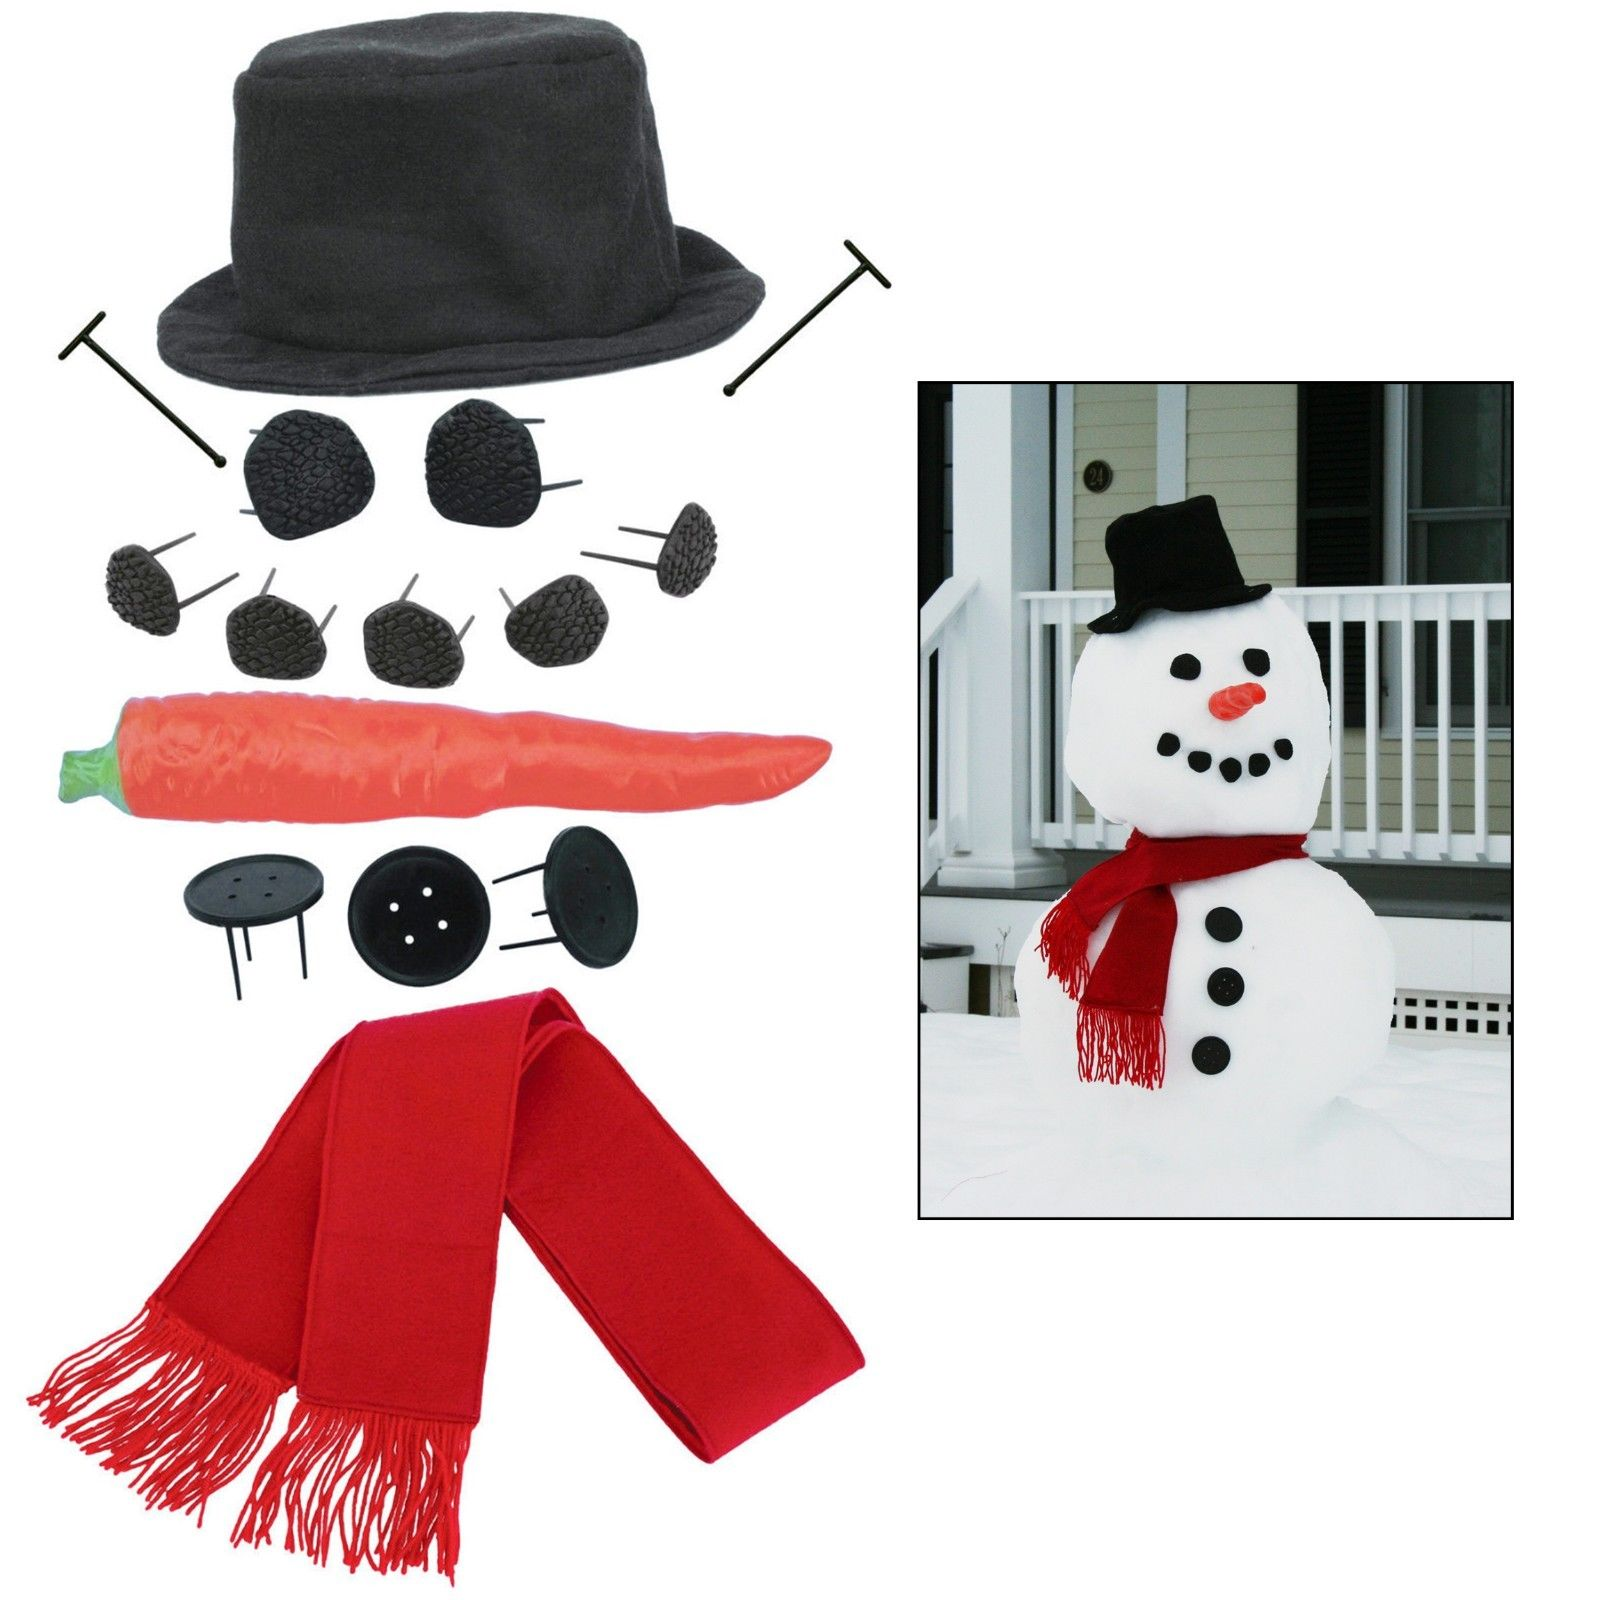 Snowman kit on @Ebay #followfindit